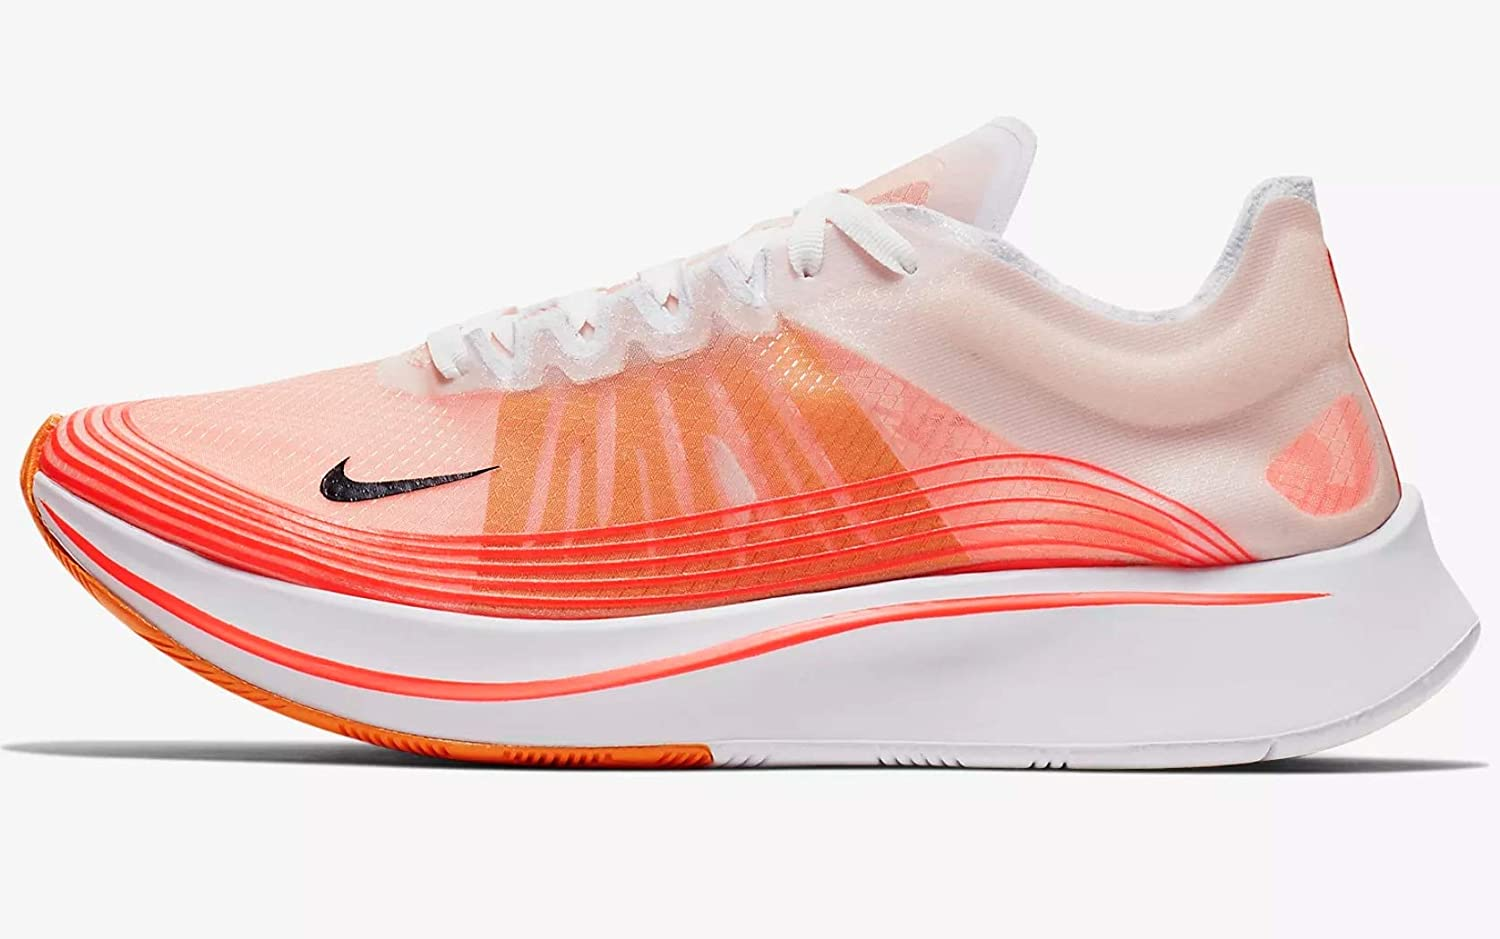 Amazon.com: Nike WMNS Zoom Fly Sp Aj8229-600 - Chaqueta para ...